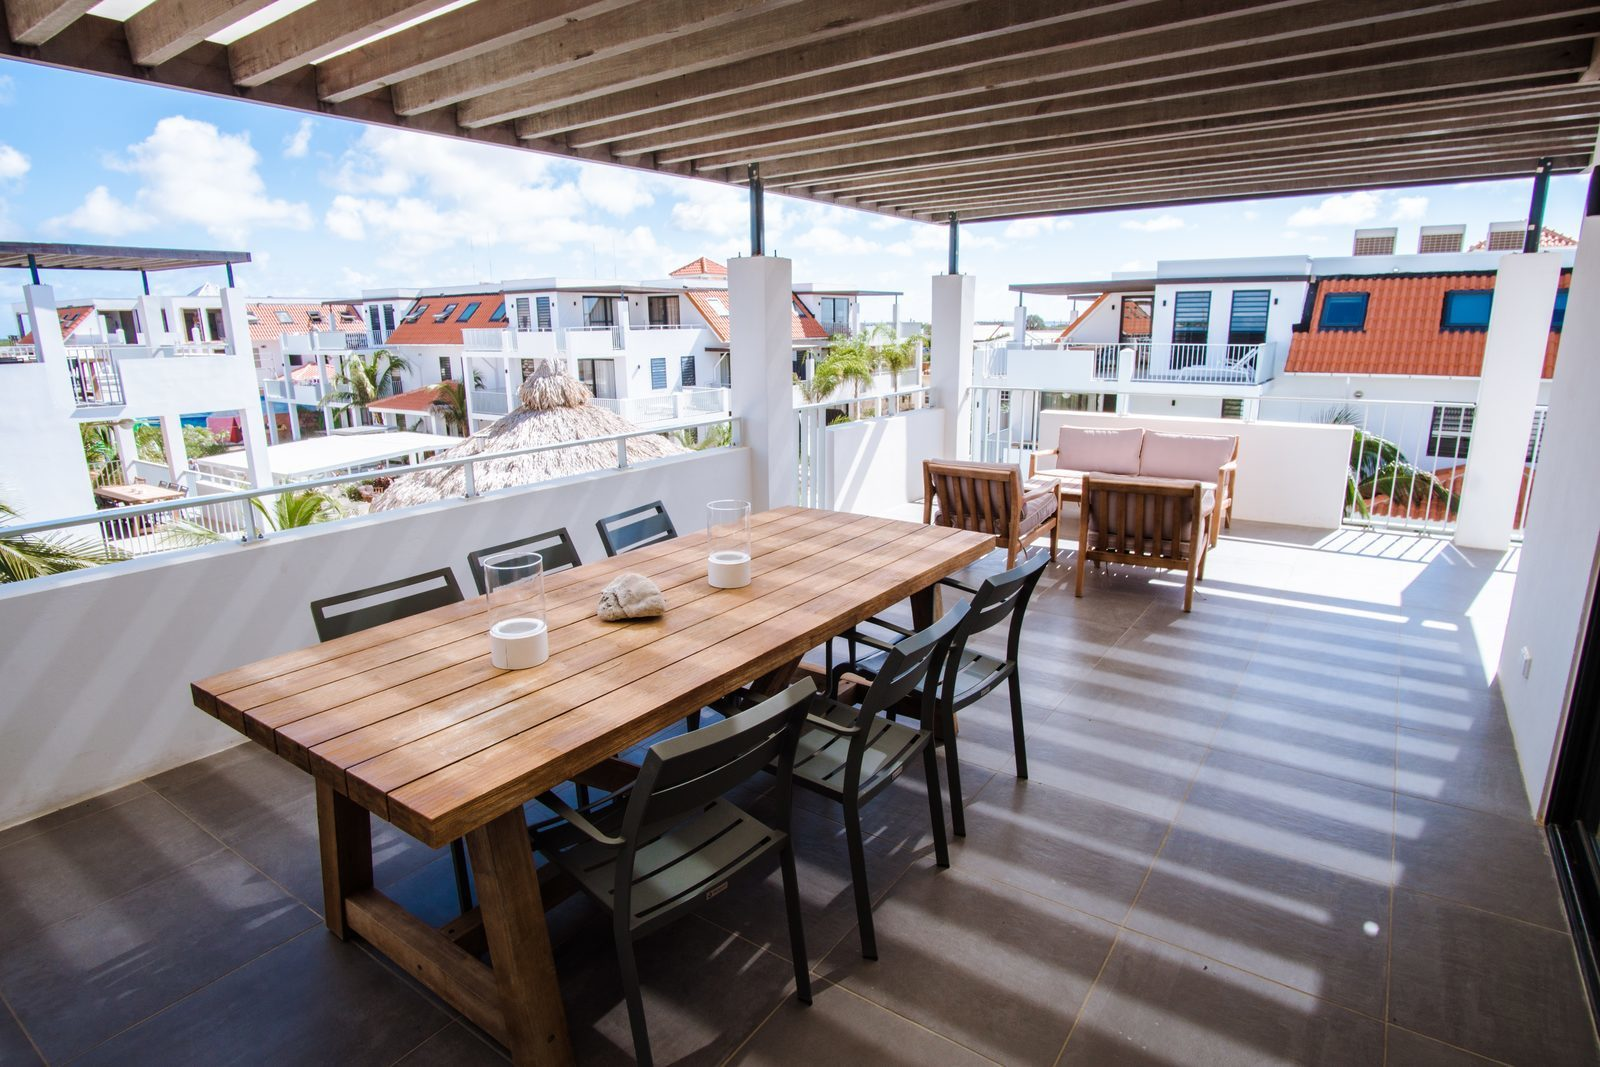 Resort Bonaire's top apartment has a very spacious balcony, from which you have a view of the resort.